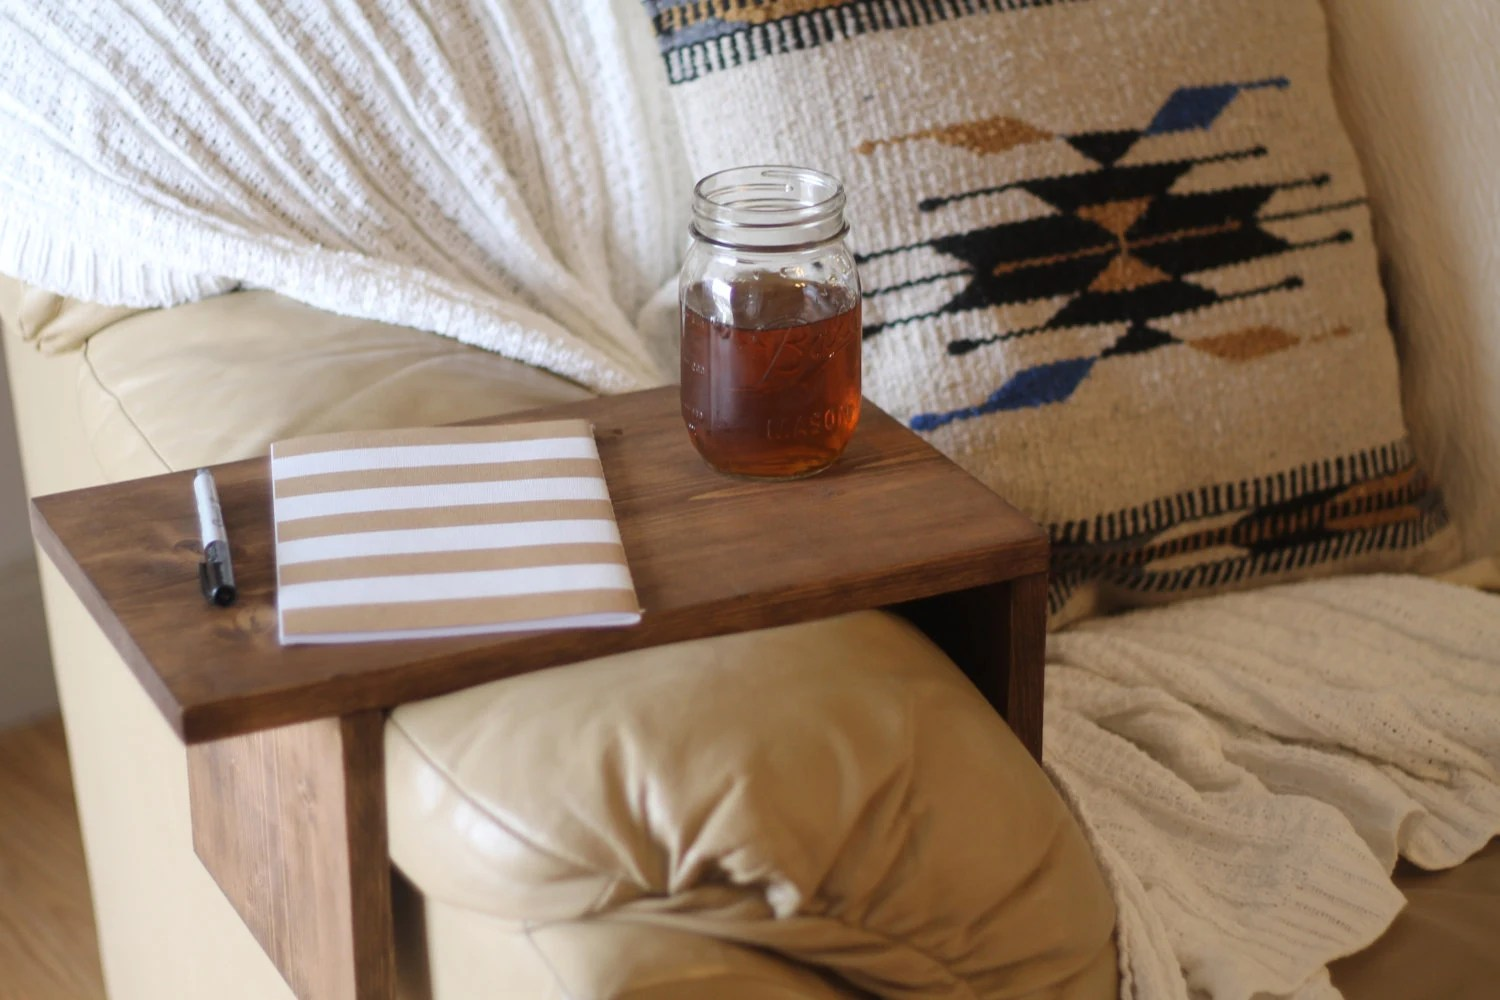 sofa arm tray wood crypton uk rustic rest table couch